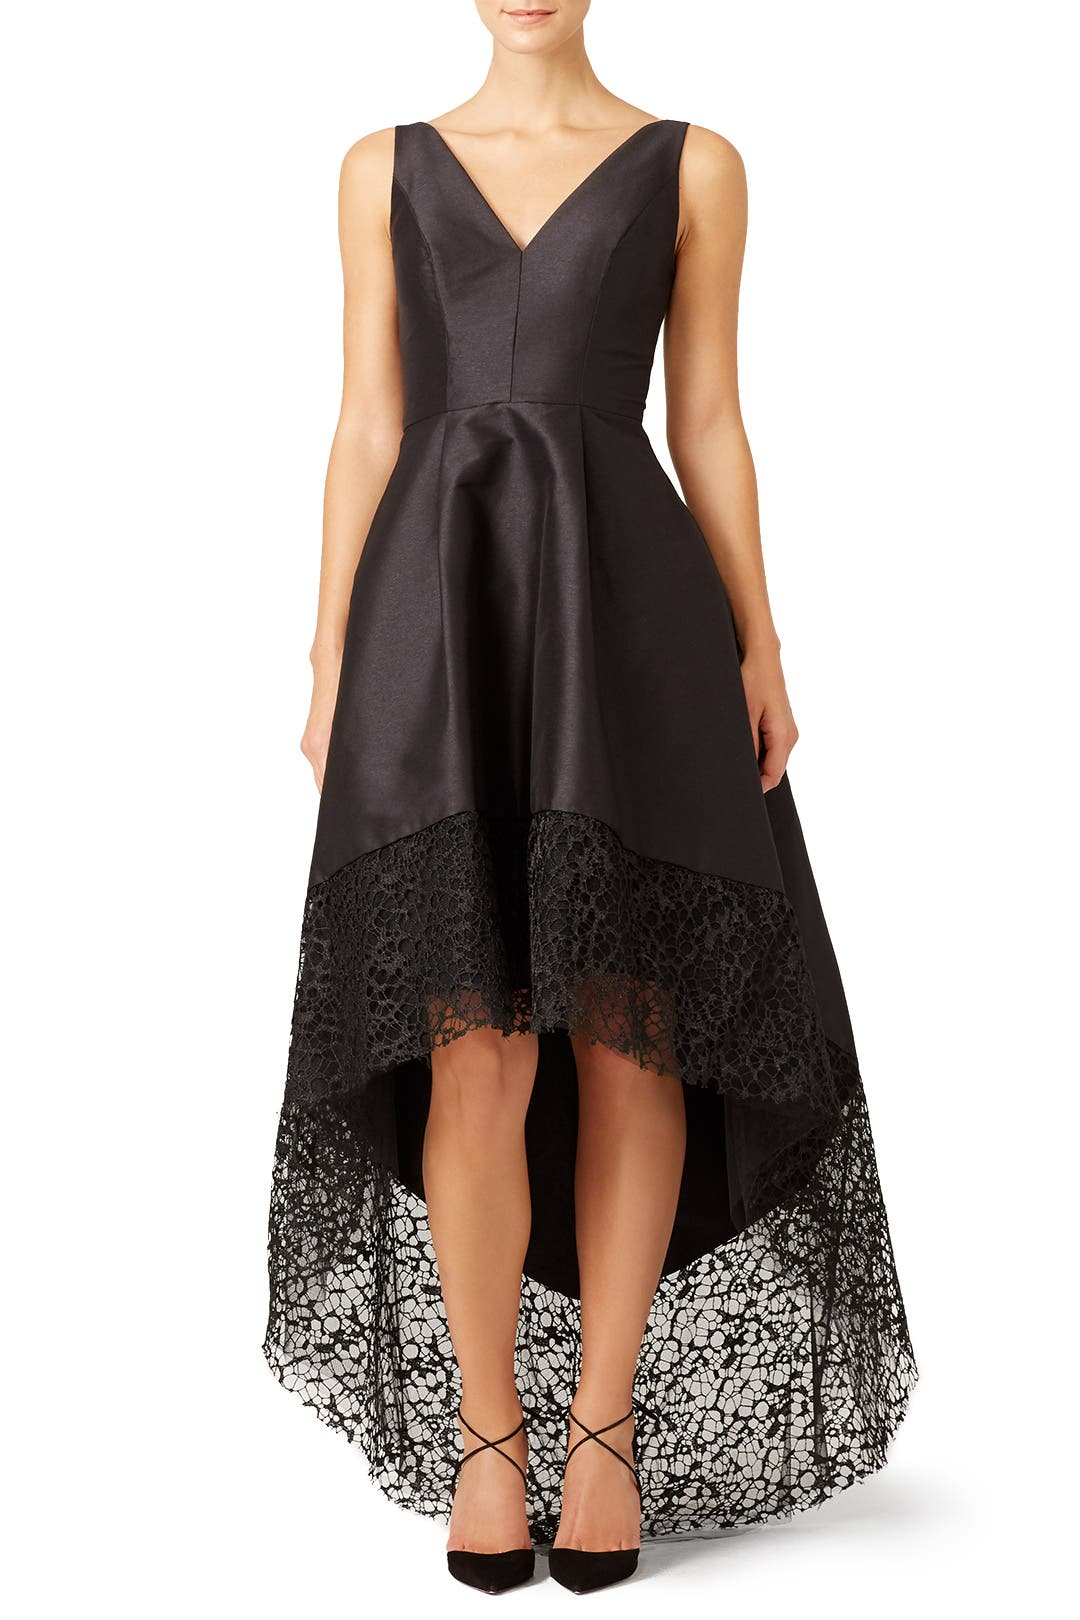 Spiderweb Gown By Ml Monique Lhuillier For 95 105